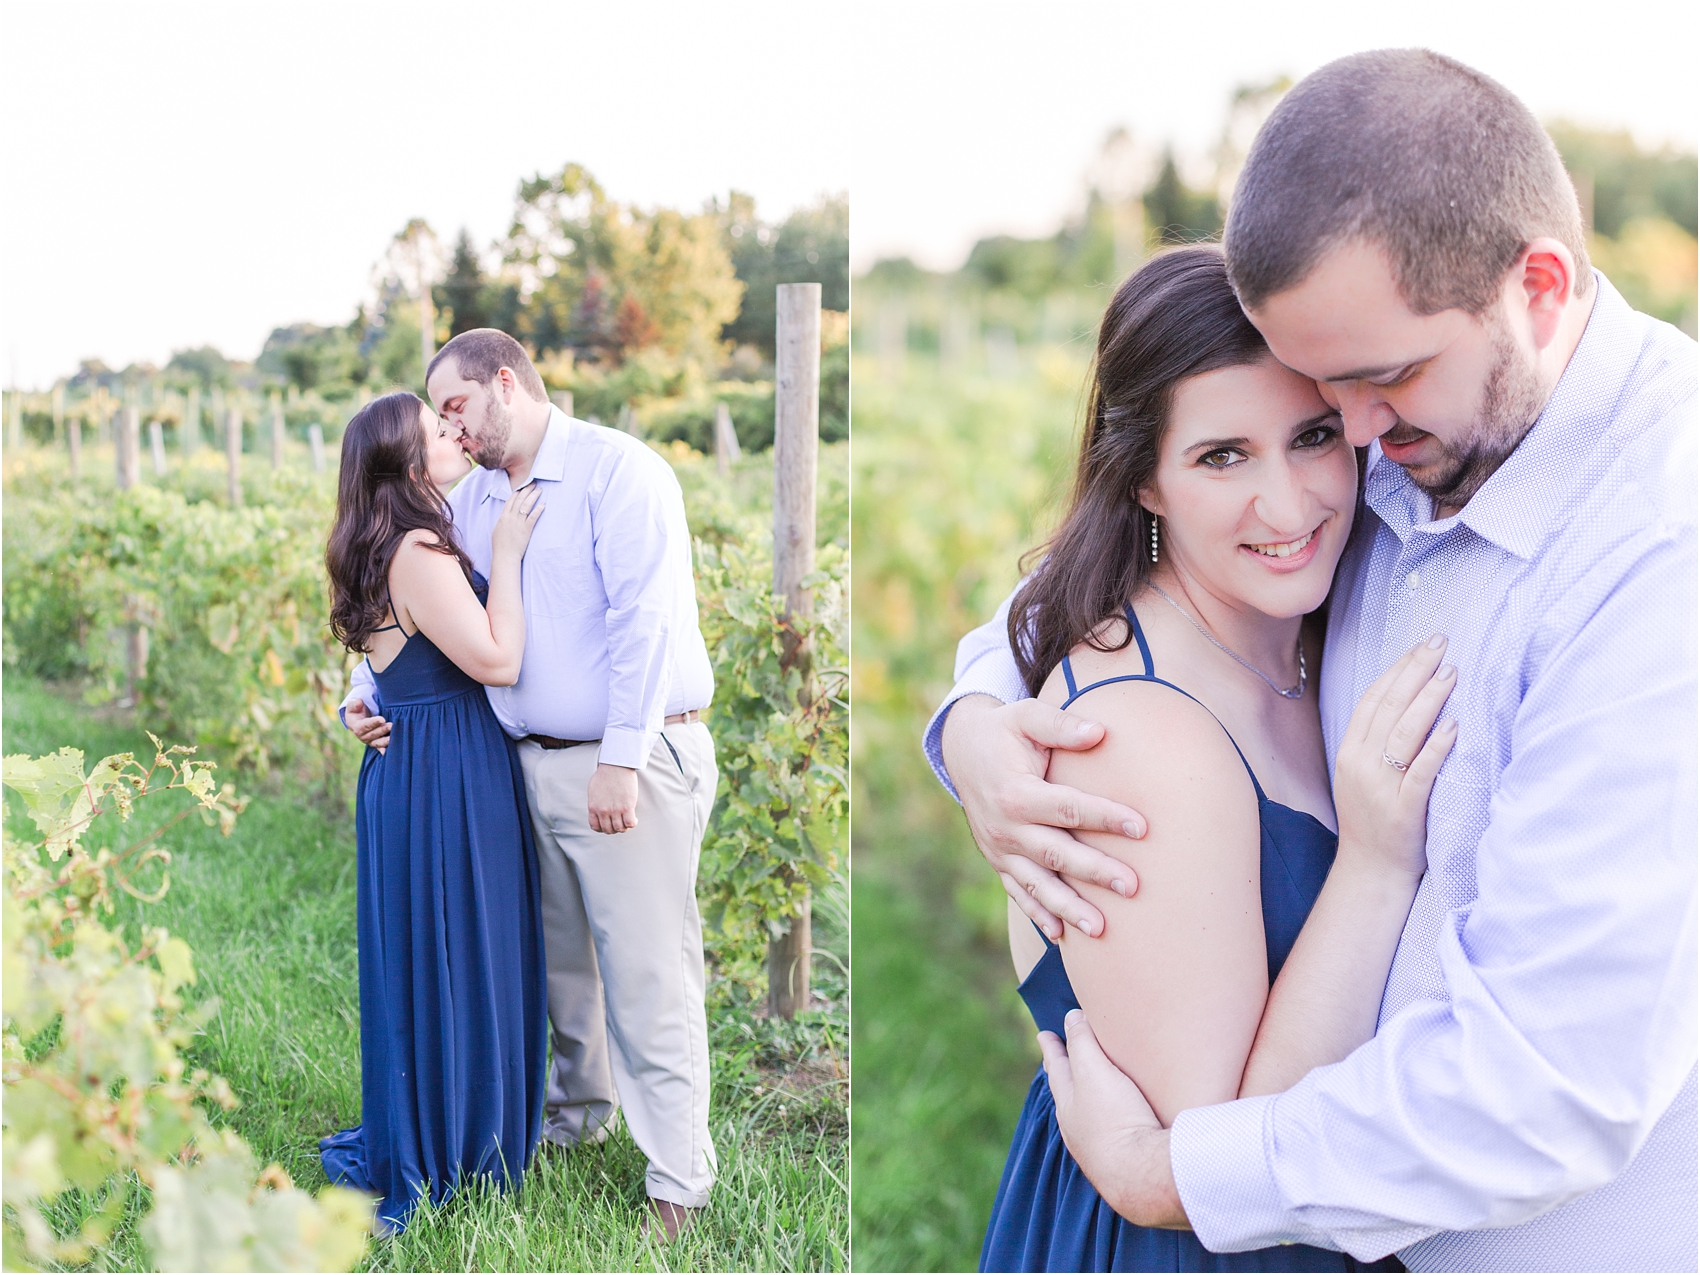 candid-romantic-summer-engagement-photos-at-hidden-lake-gardens-and-black-fire-winery-in-tipton-mi-by-courtney-carolyn-photography_0004.jpg